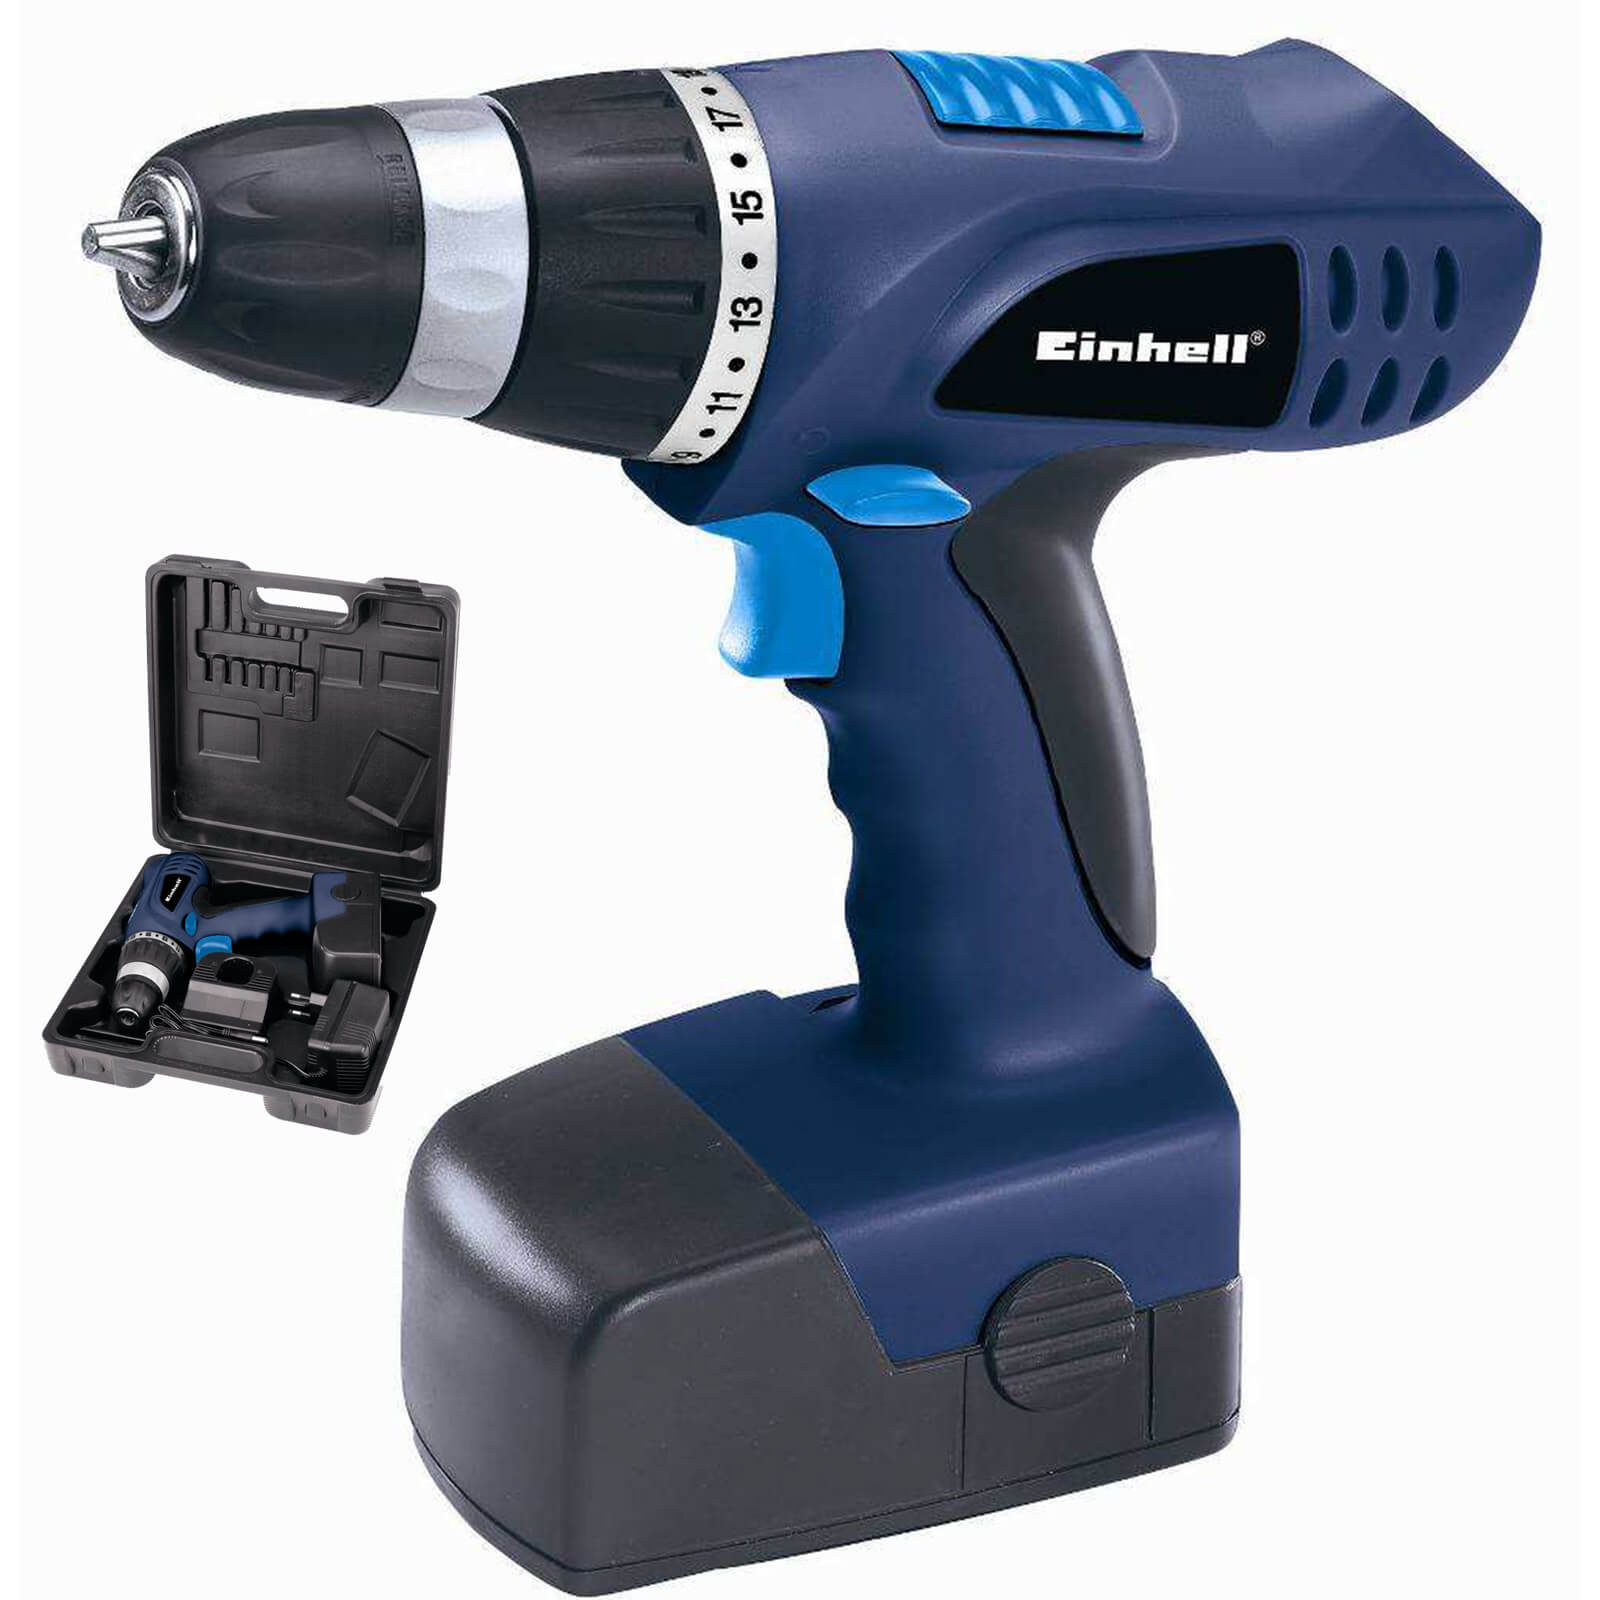 einhell bt cd 18 v akkuschrauber set blue akkubohrer akku bohrschrauber 18 volt ebay. Black Bedroom Furniture Sets. Home Design Ideas